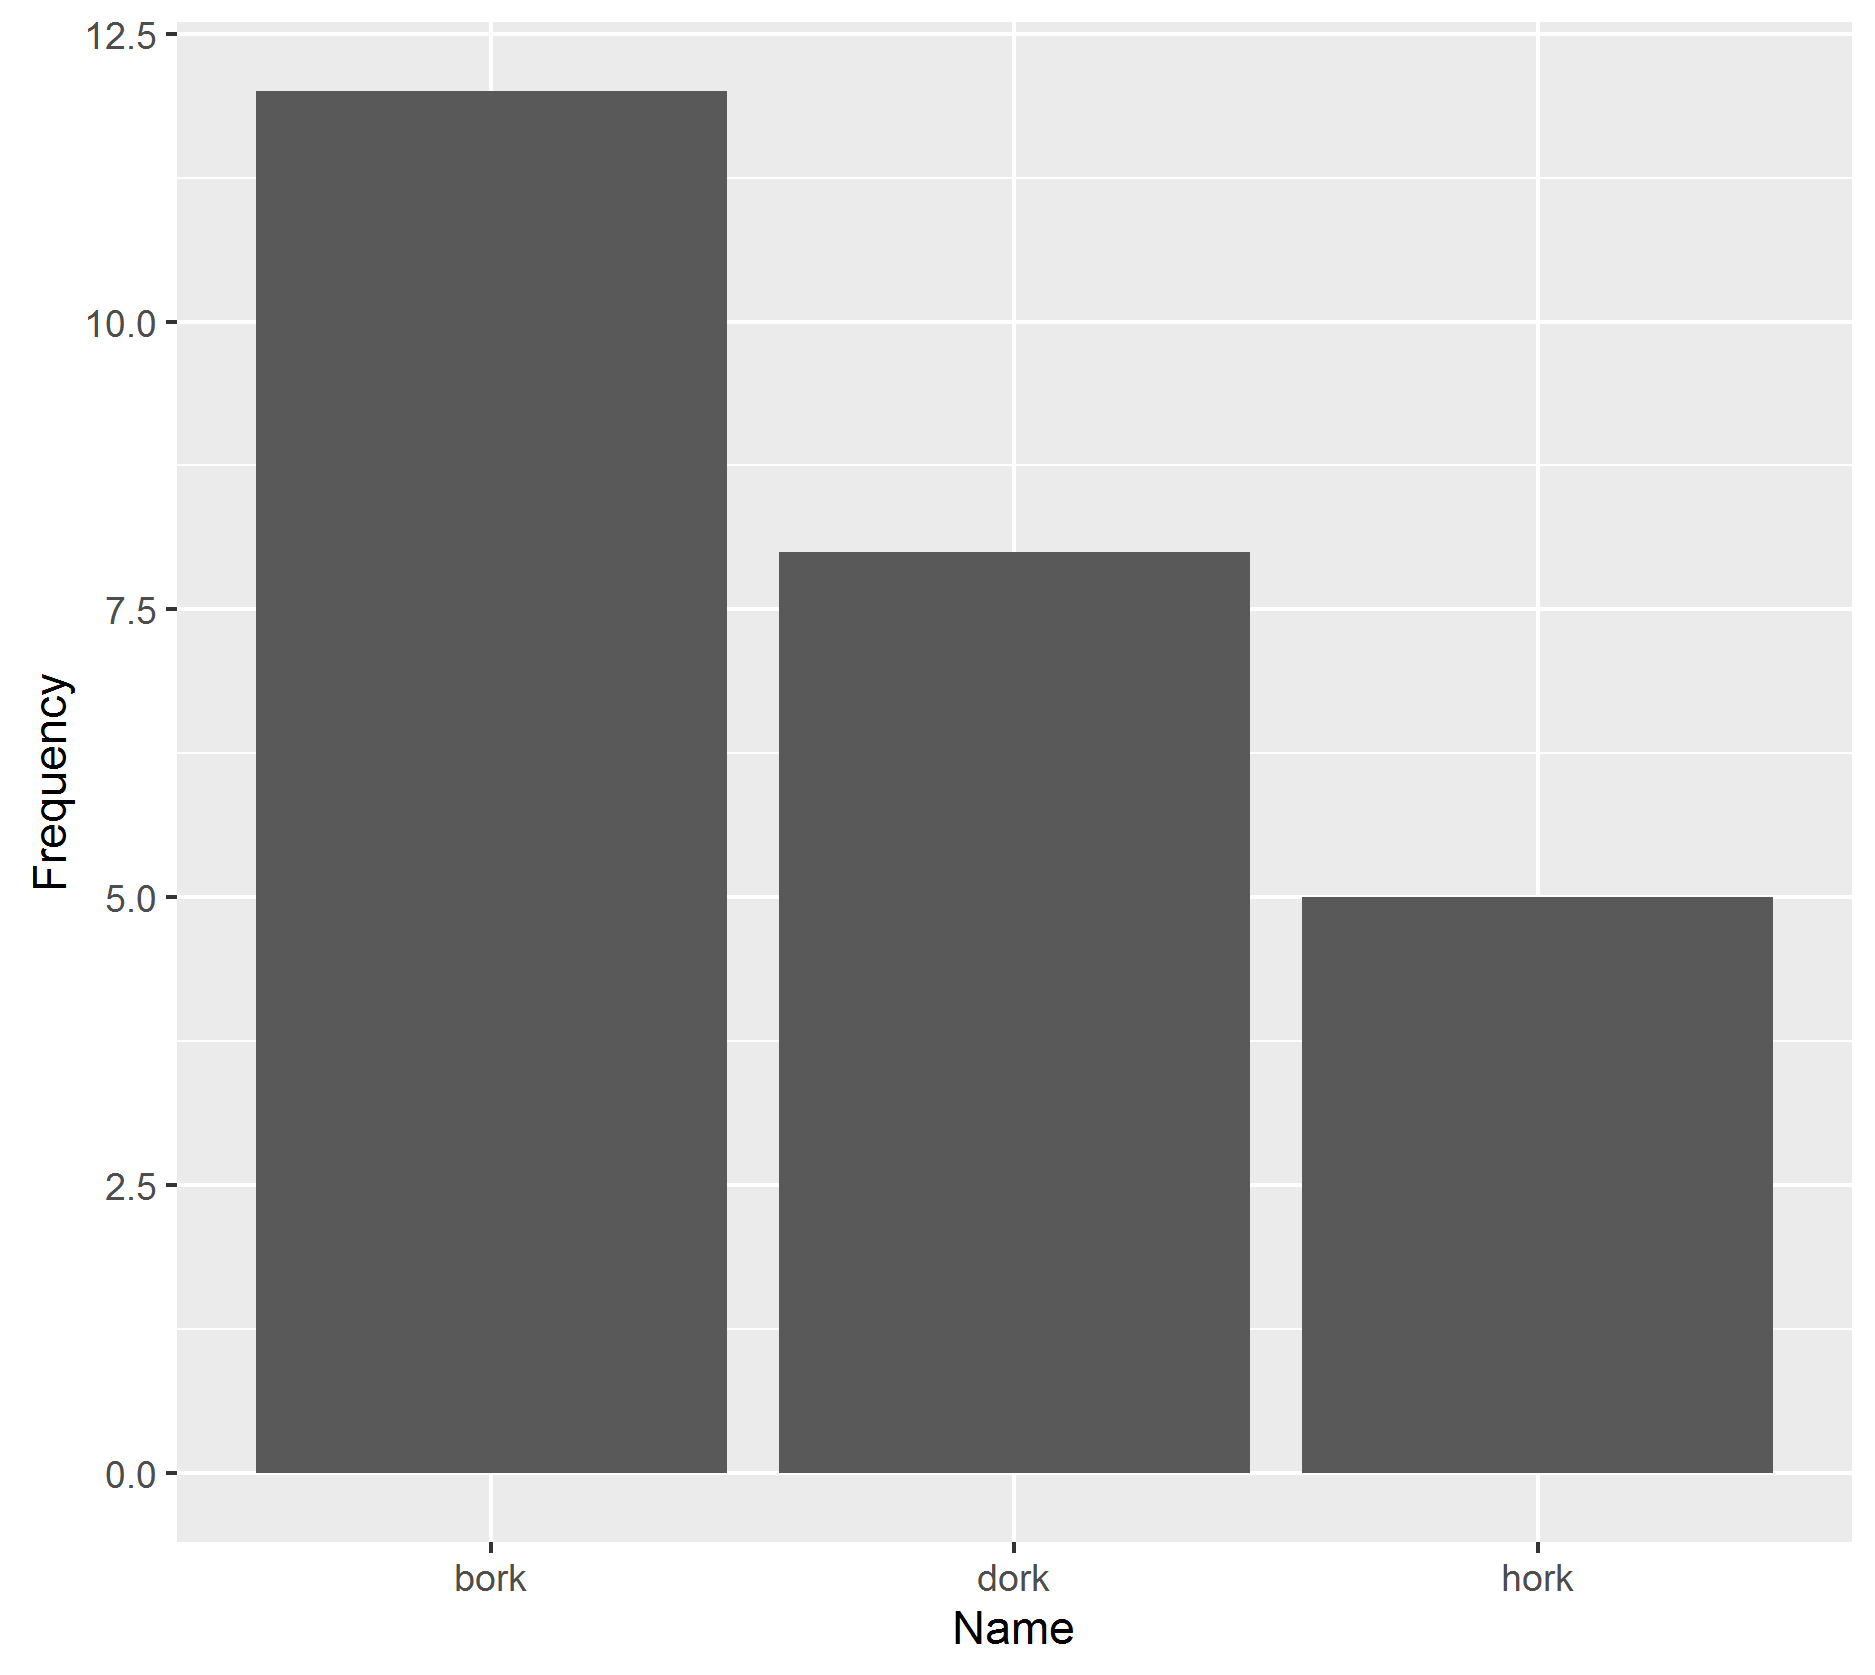 """ggplot(dat, aes(Name, Frequency)) + geom_bar(stat =""""identity"""")"""